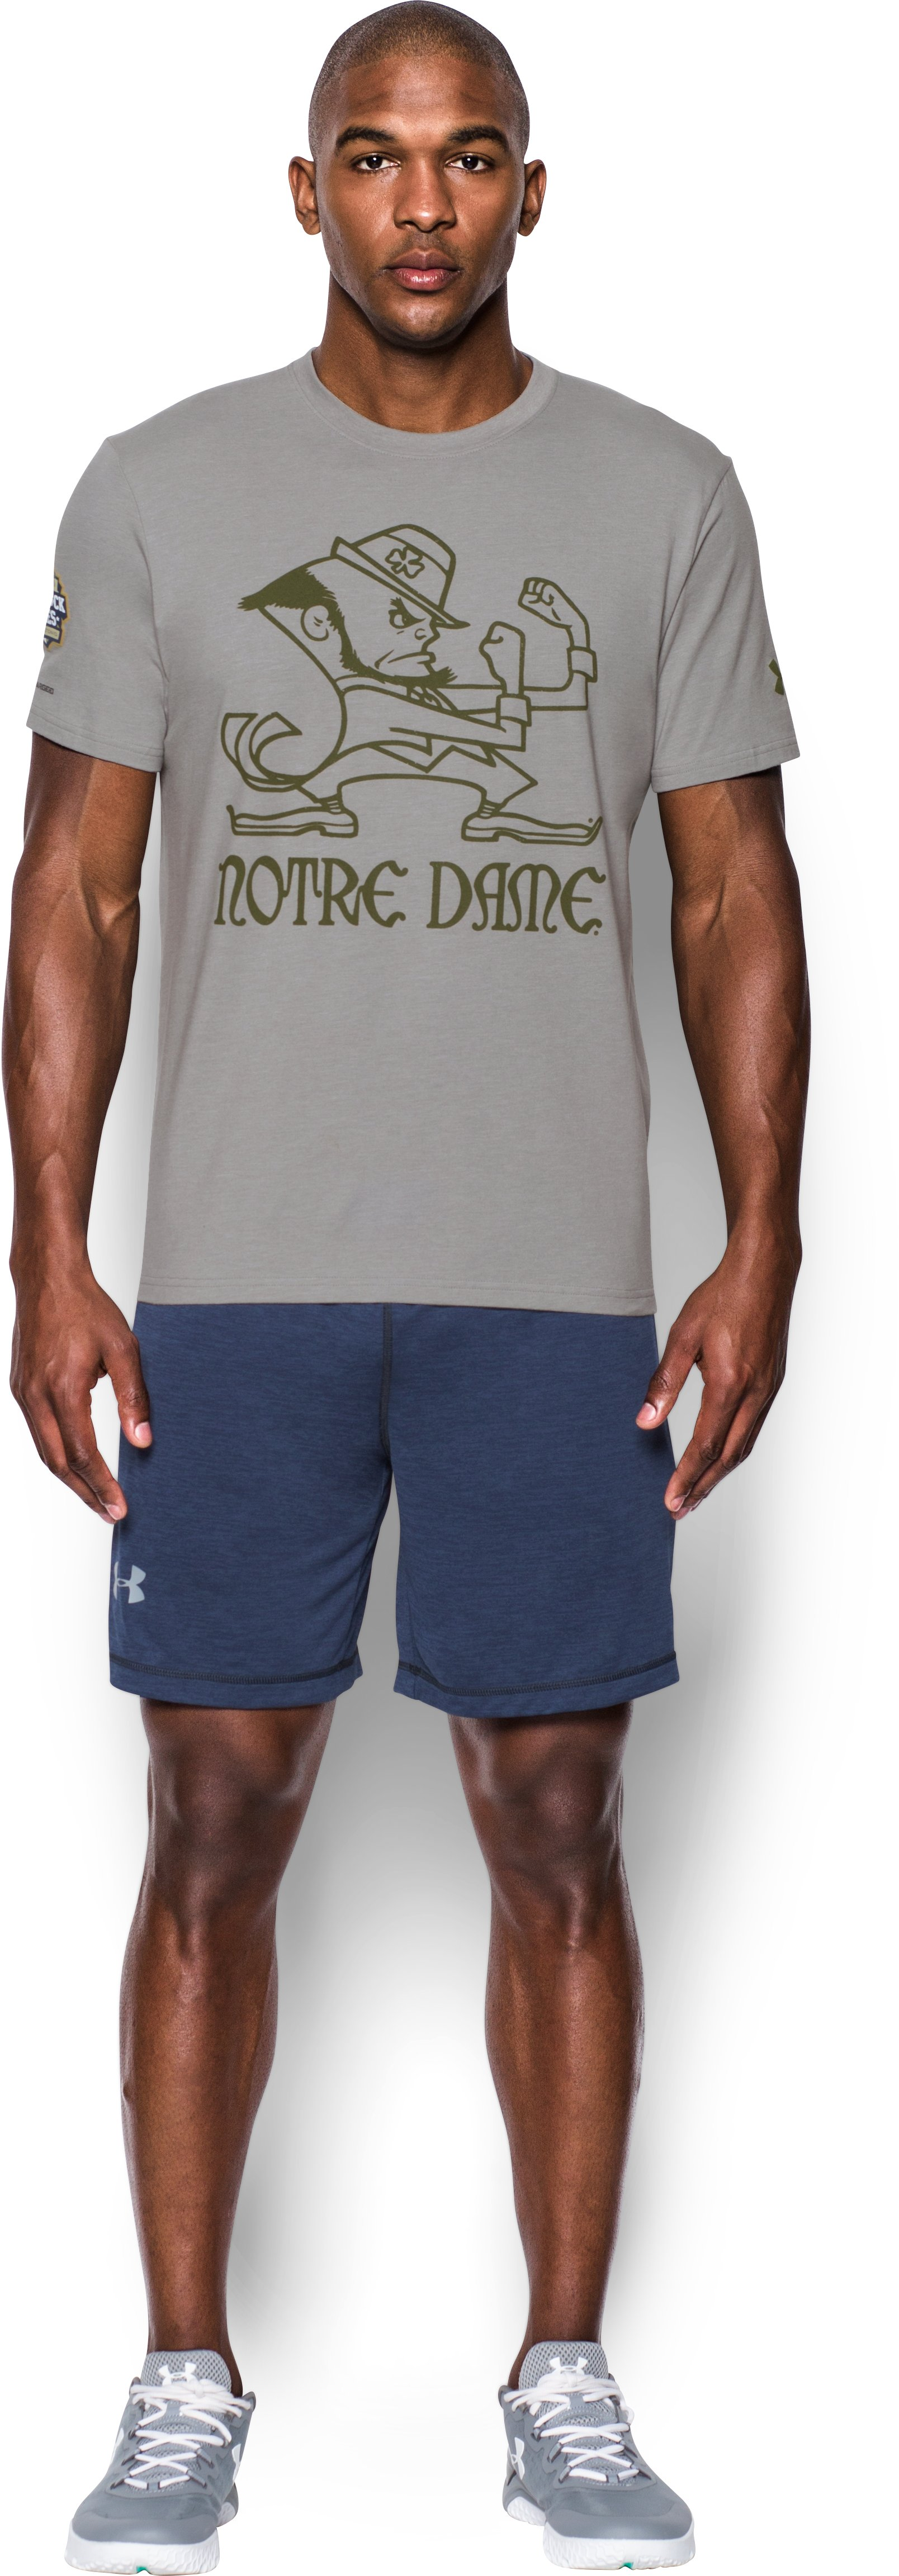 Men's Notre Dame UA Leprechaun T-Shirt, True Gray Heather